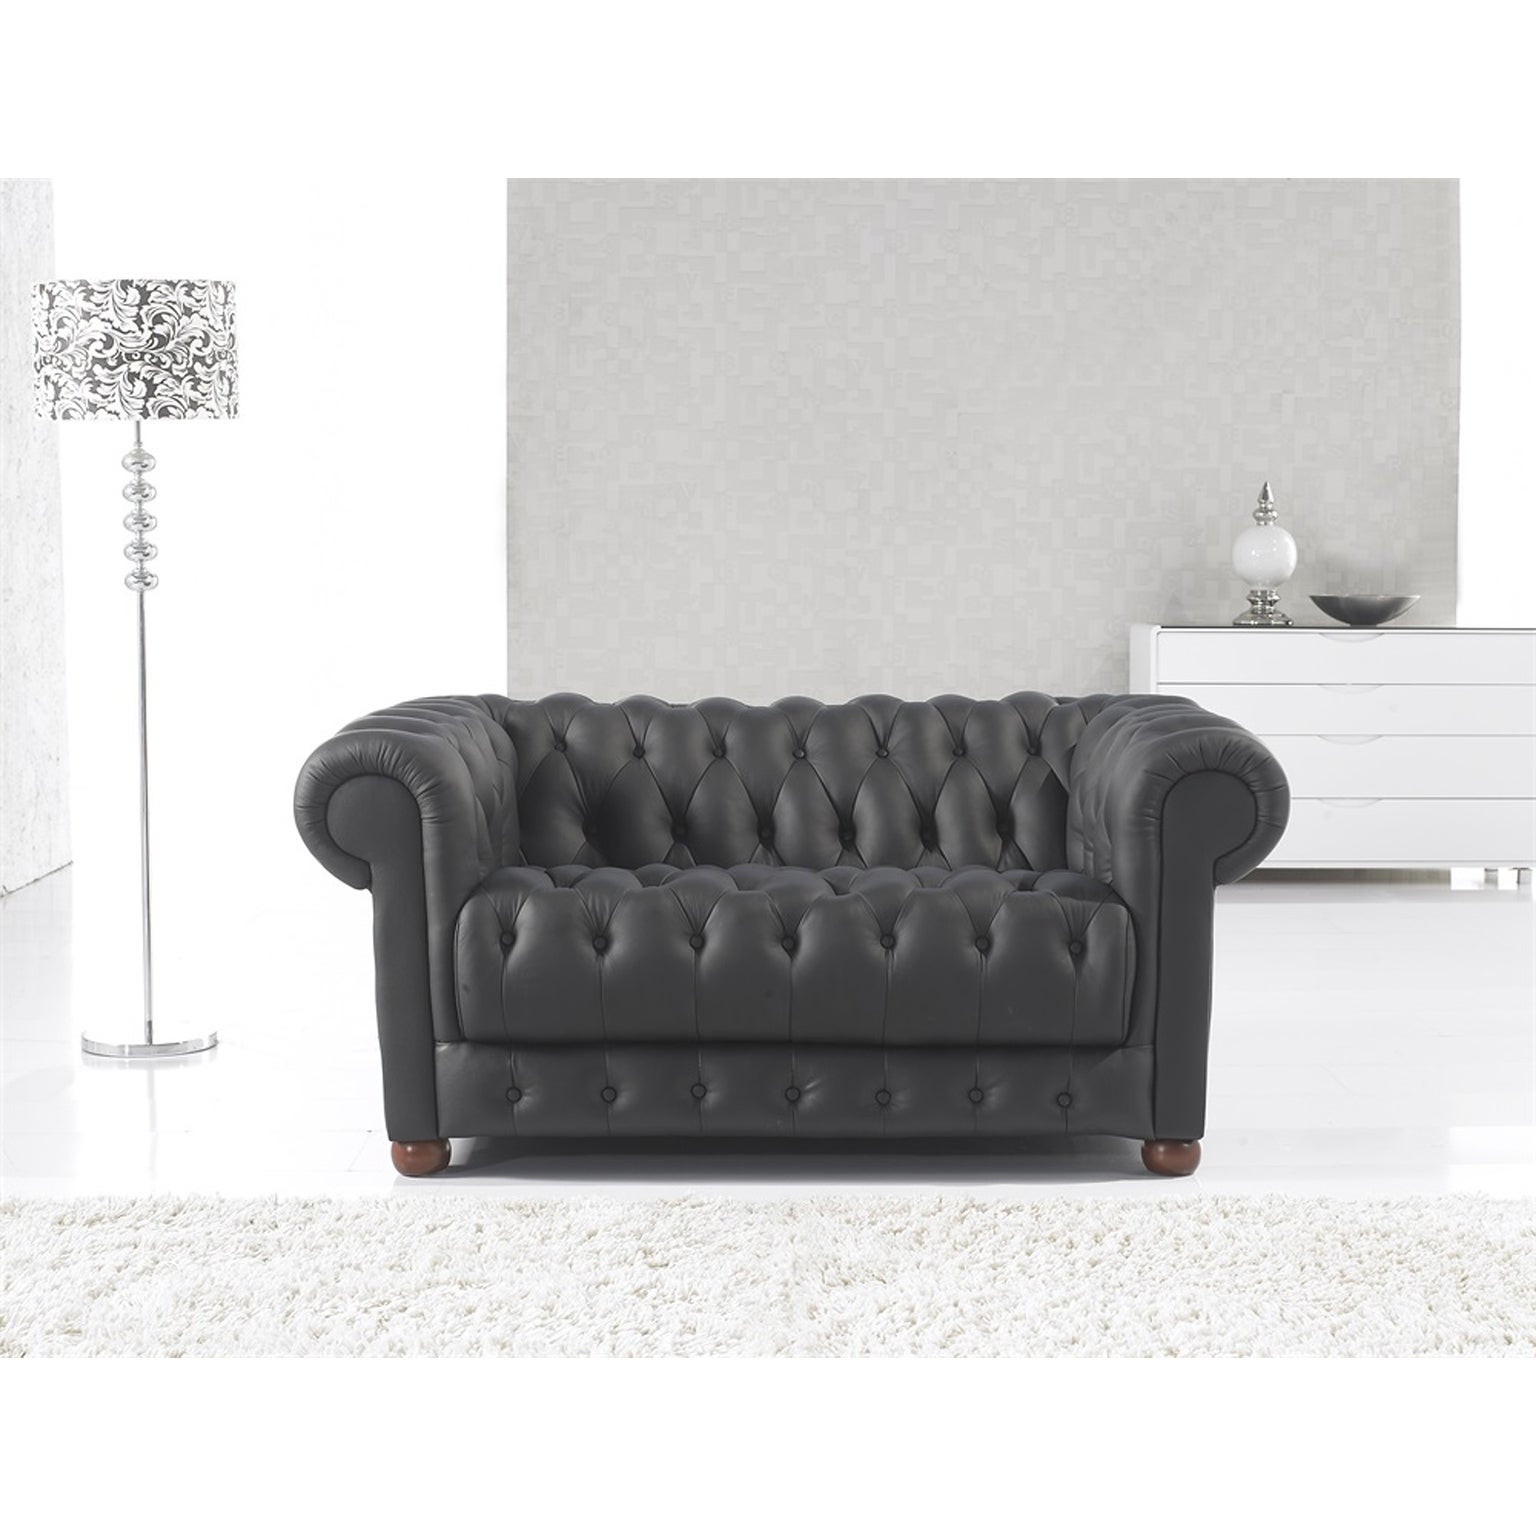 Shop Black Friday Deals On Matte Black Modern Contemporary Real Leather Configurable Living Room Furniture Set With Sofa Loveseat And Chair On Sale Overstock 24239956 Brown